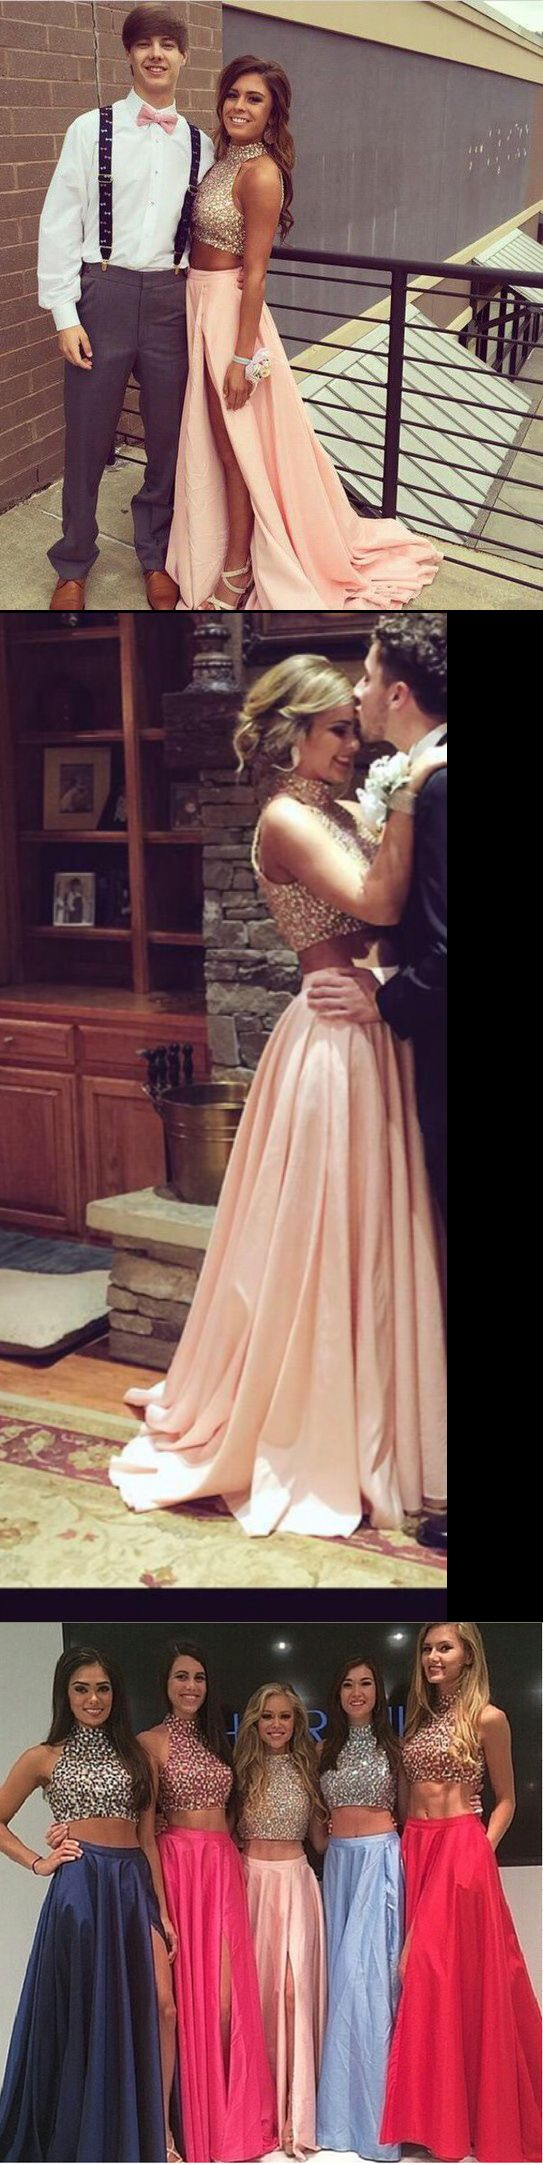 Floor Neck Two Piece Pink Taffeta Long Prom Dresses Sexy Eveningprom Neck Two Piece Pink Taffeta Long Prom Dresses Sexy Prom Dresses 2016 Philippines Prom Dresses 2016 Black wedding dress Prom Dresses 2016